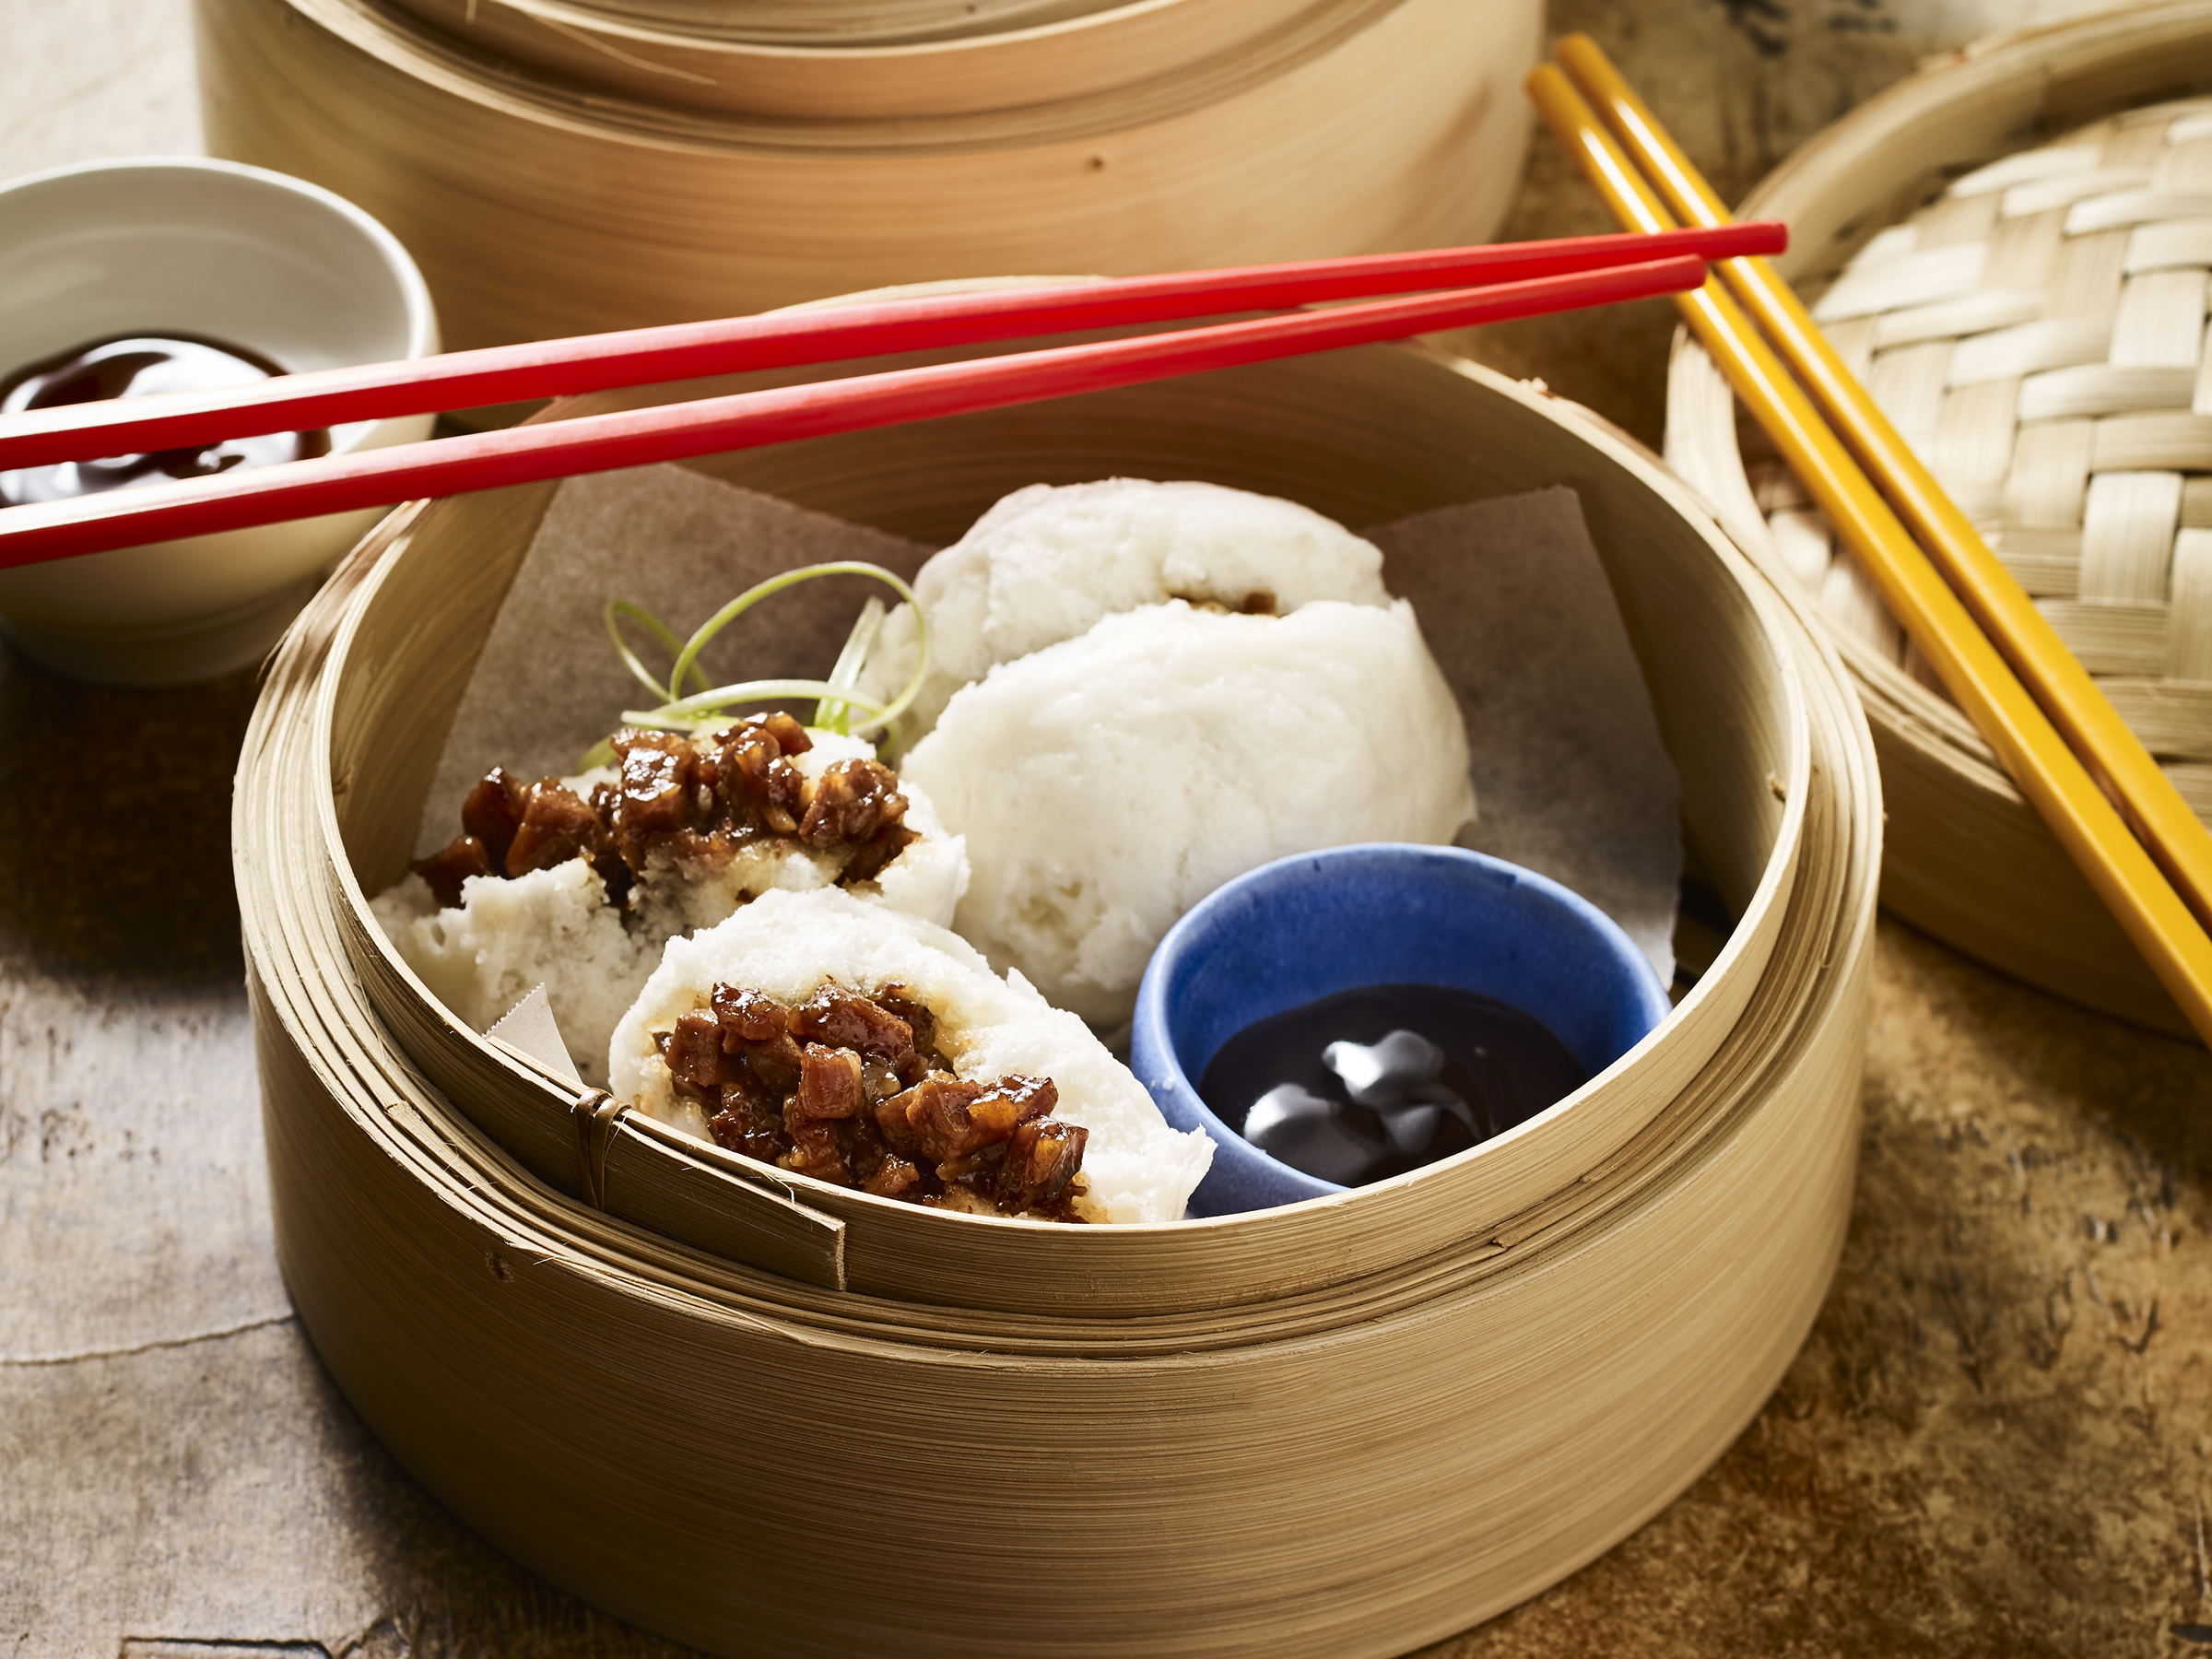 Australian pork australian pork recipes cooking tips and how to steamed bbq pork buns forumfinder Choice Image